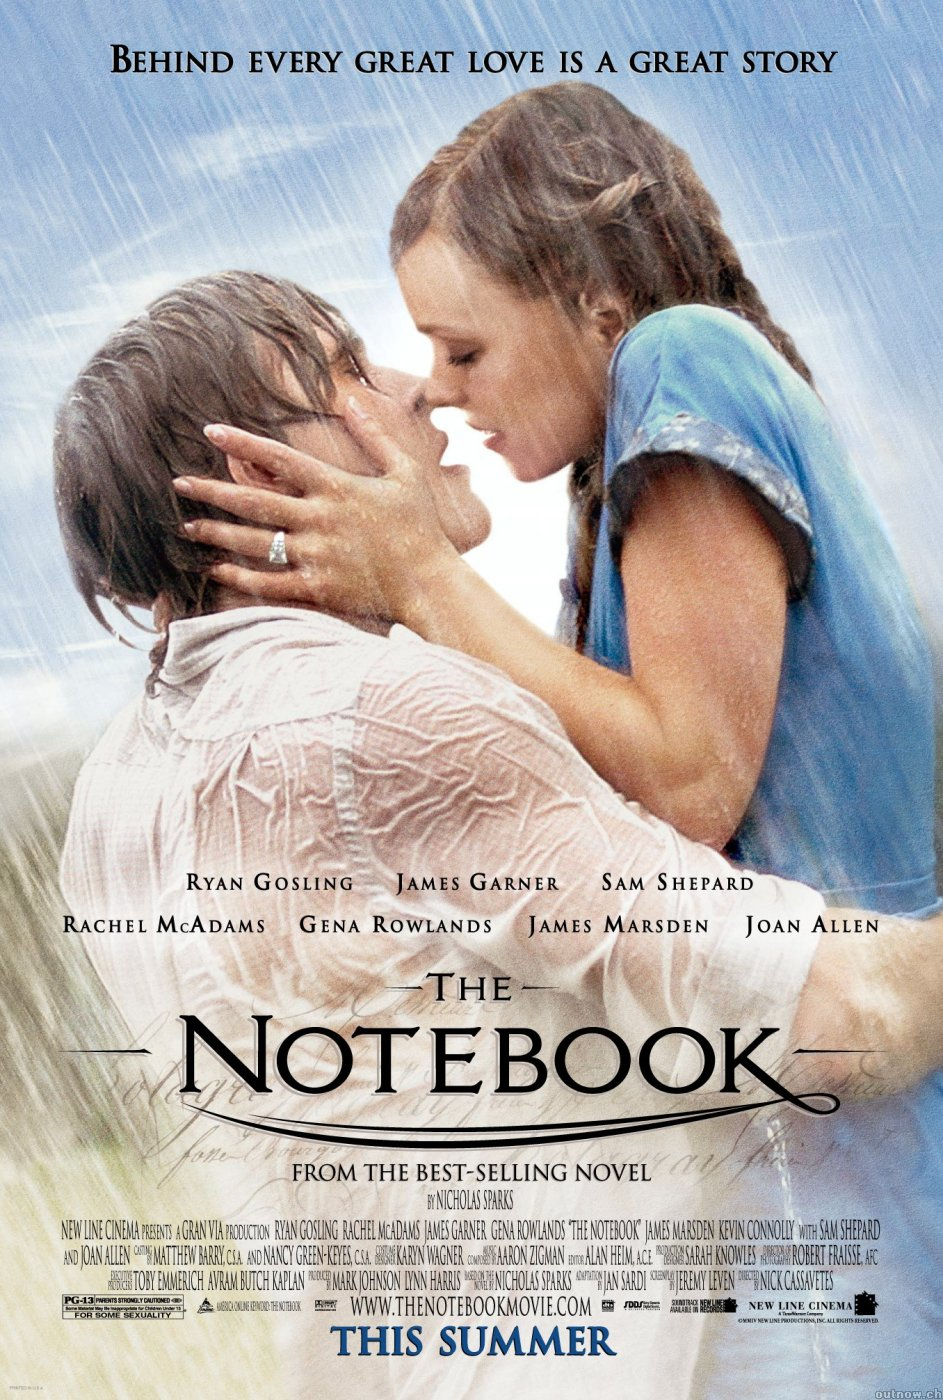 The Notebook  poster is copied by Kites